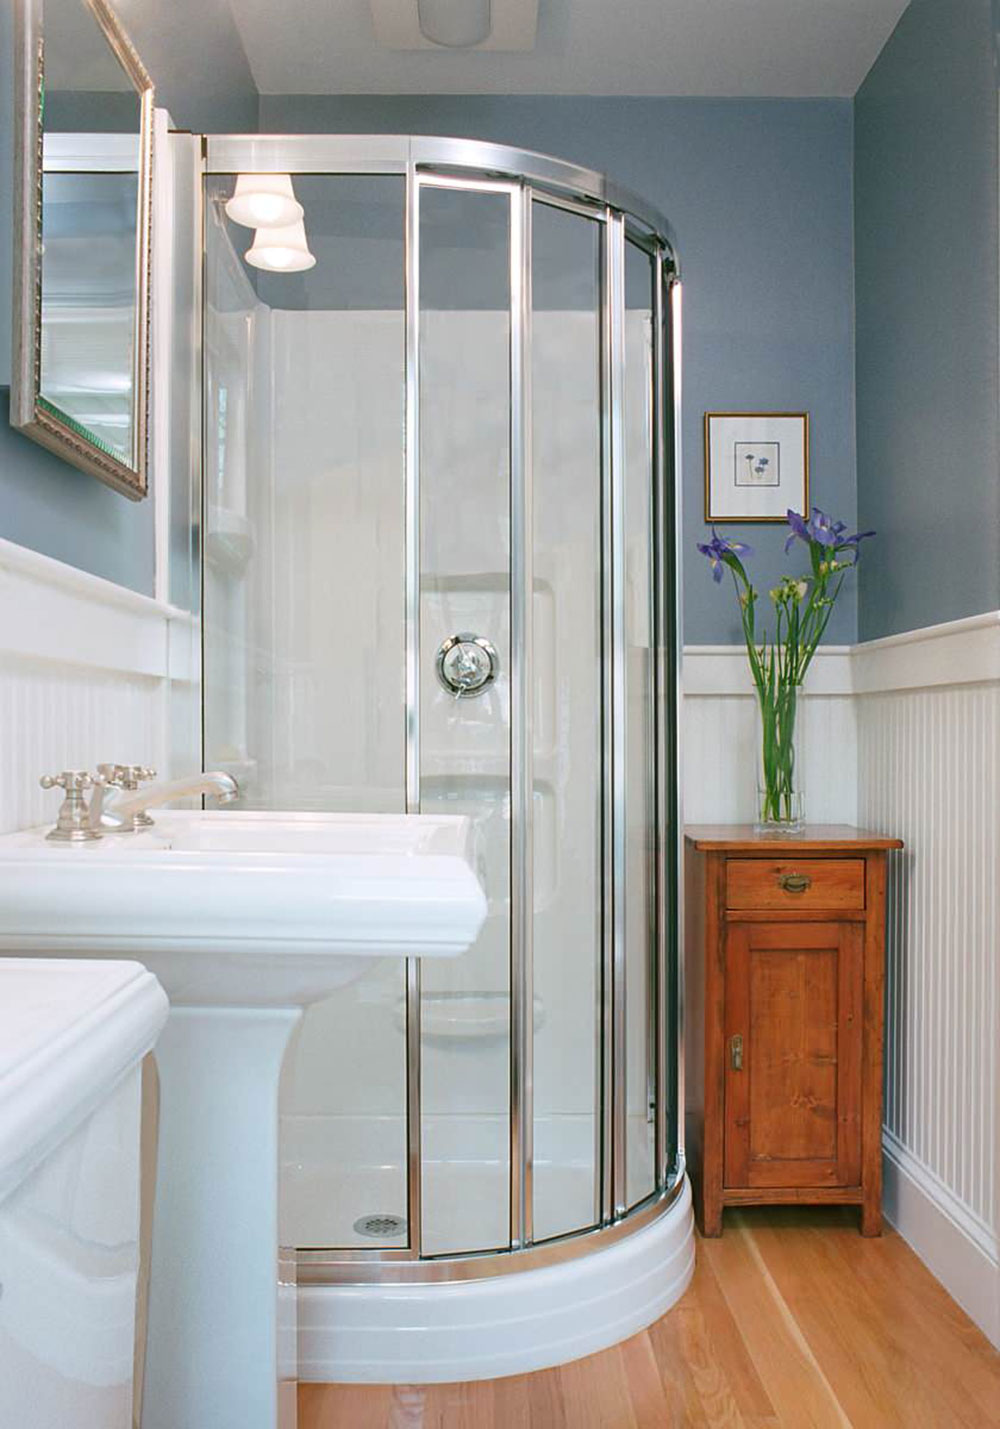 Great How To Make A Small Bathroom Look Bigger1 How